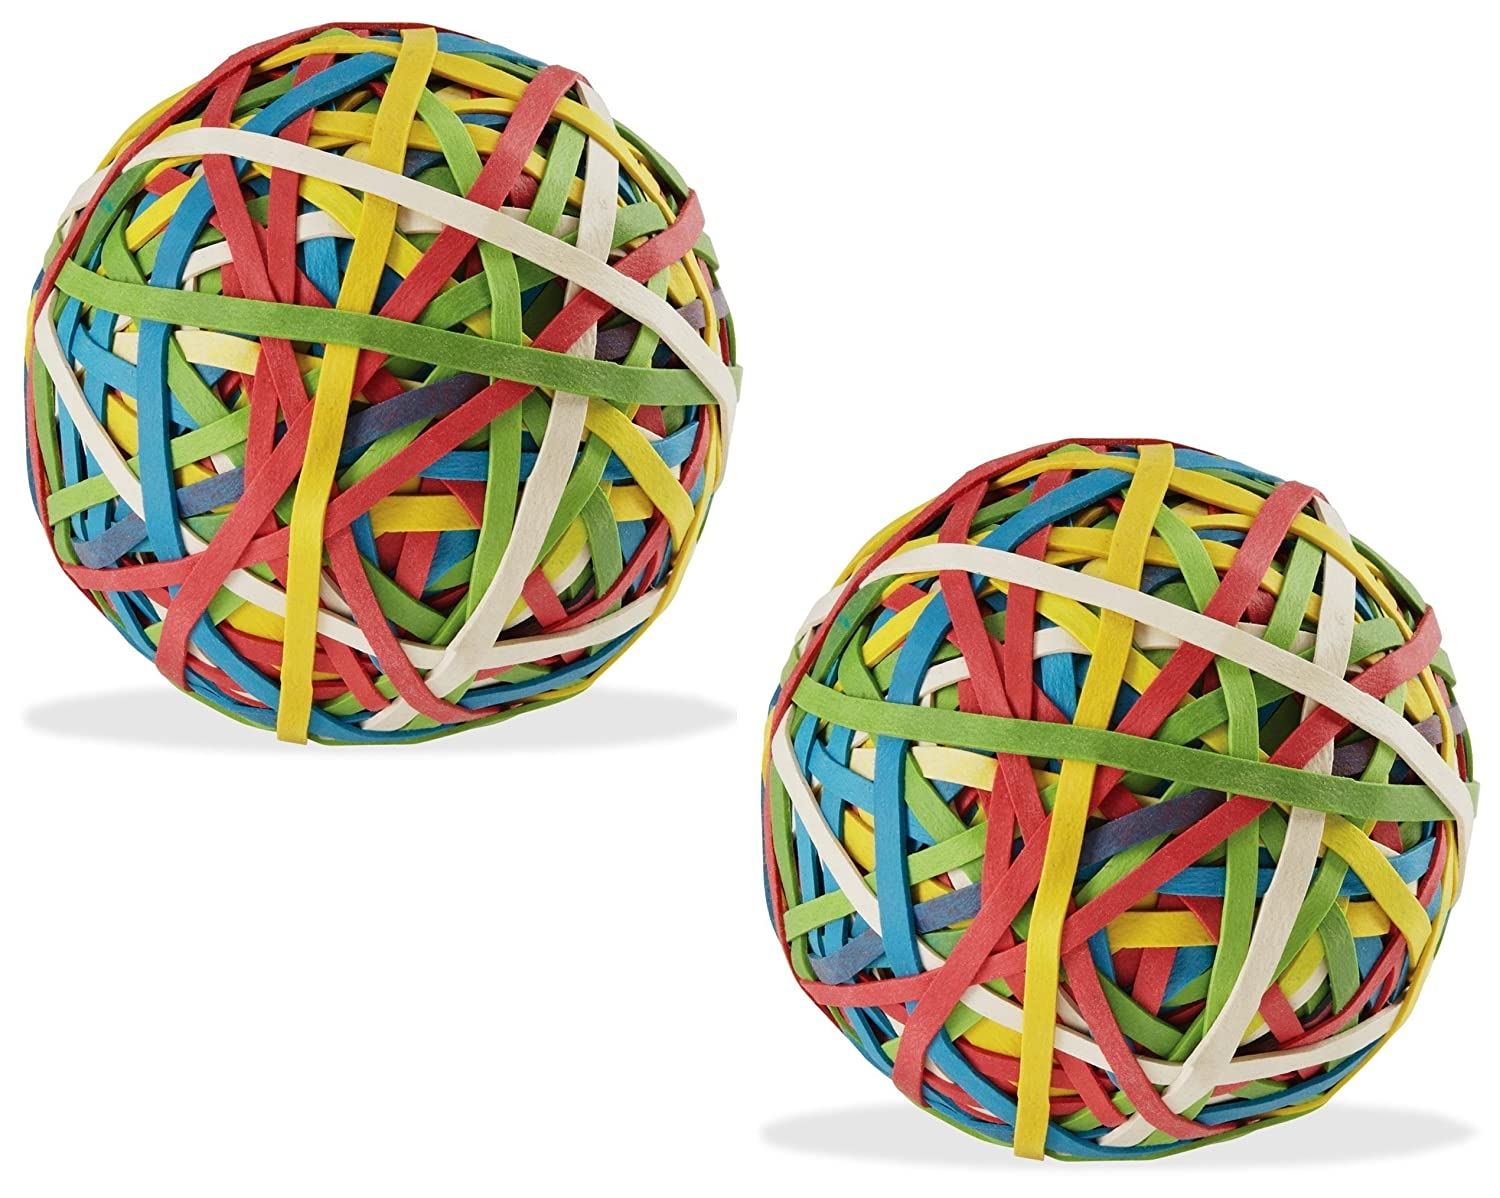 Color Rubber Band Ball (135 gm x 2) - Pack of 2 Yosogo H135gm/R8-2